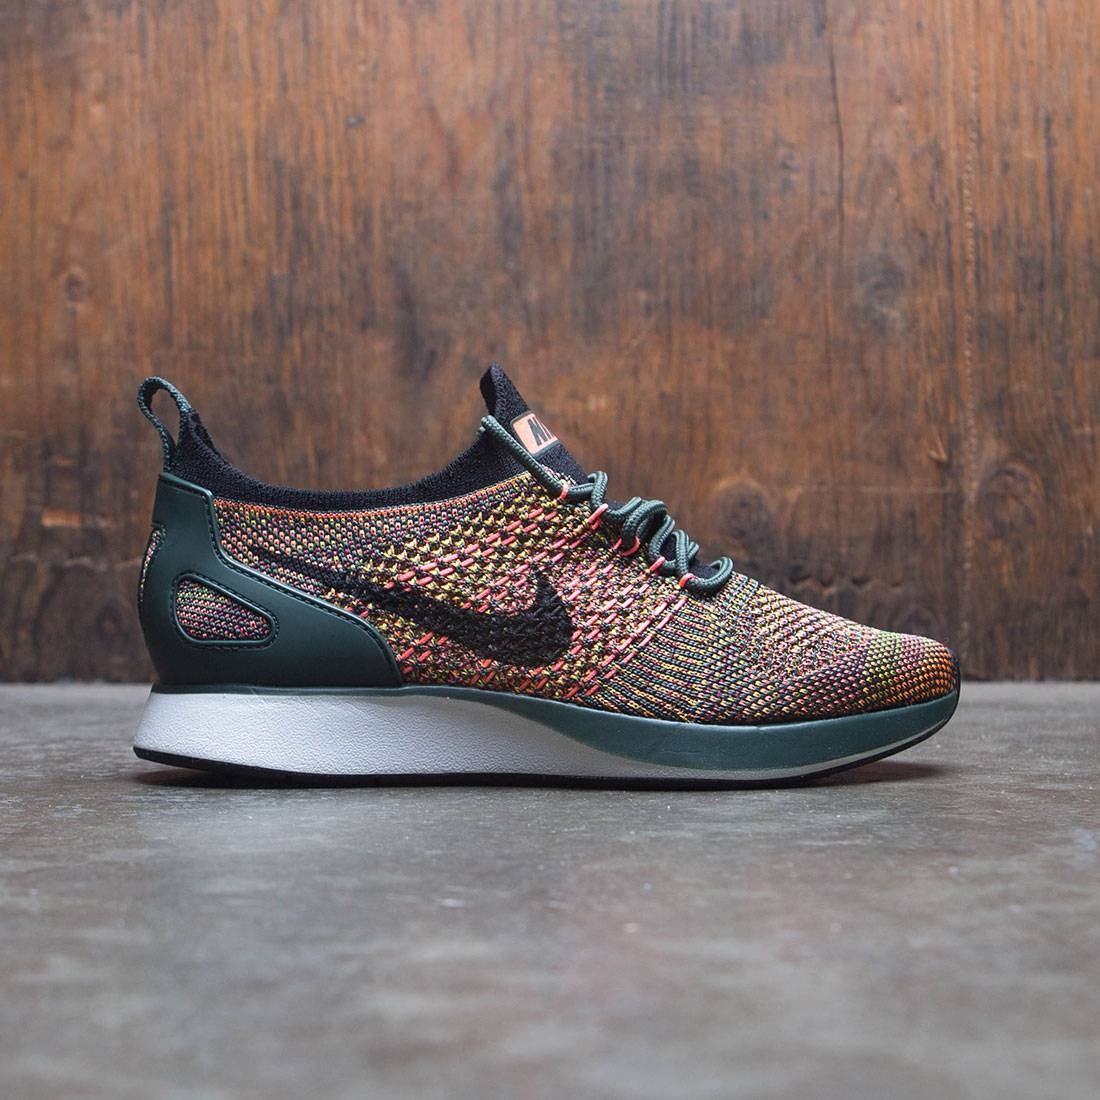 quality design 27a9d 61f19 nike women air zoom mariah flyknit racer vintage green black summit white